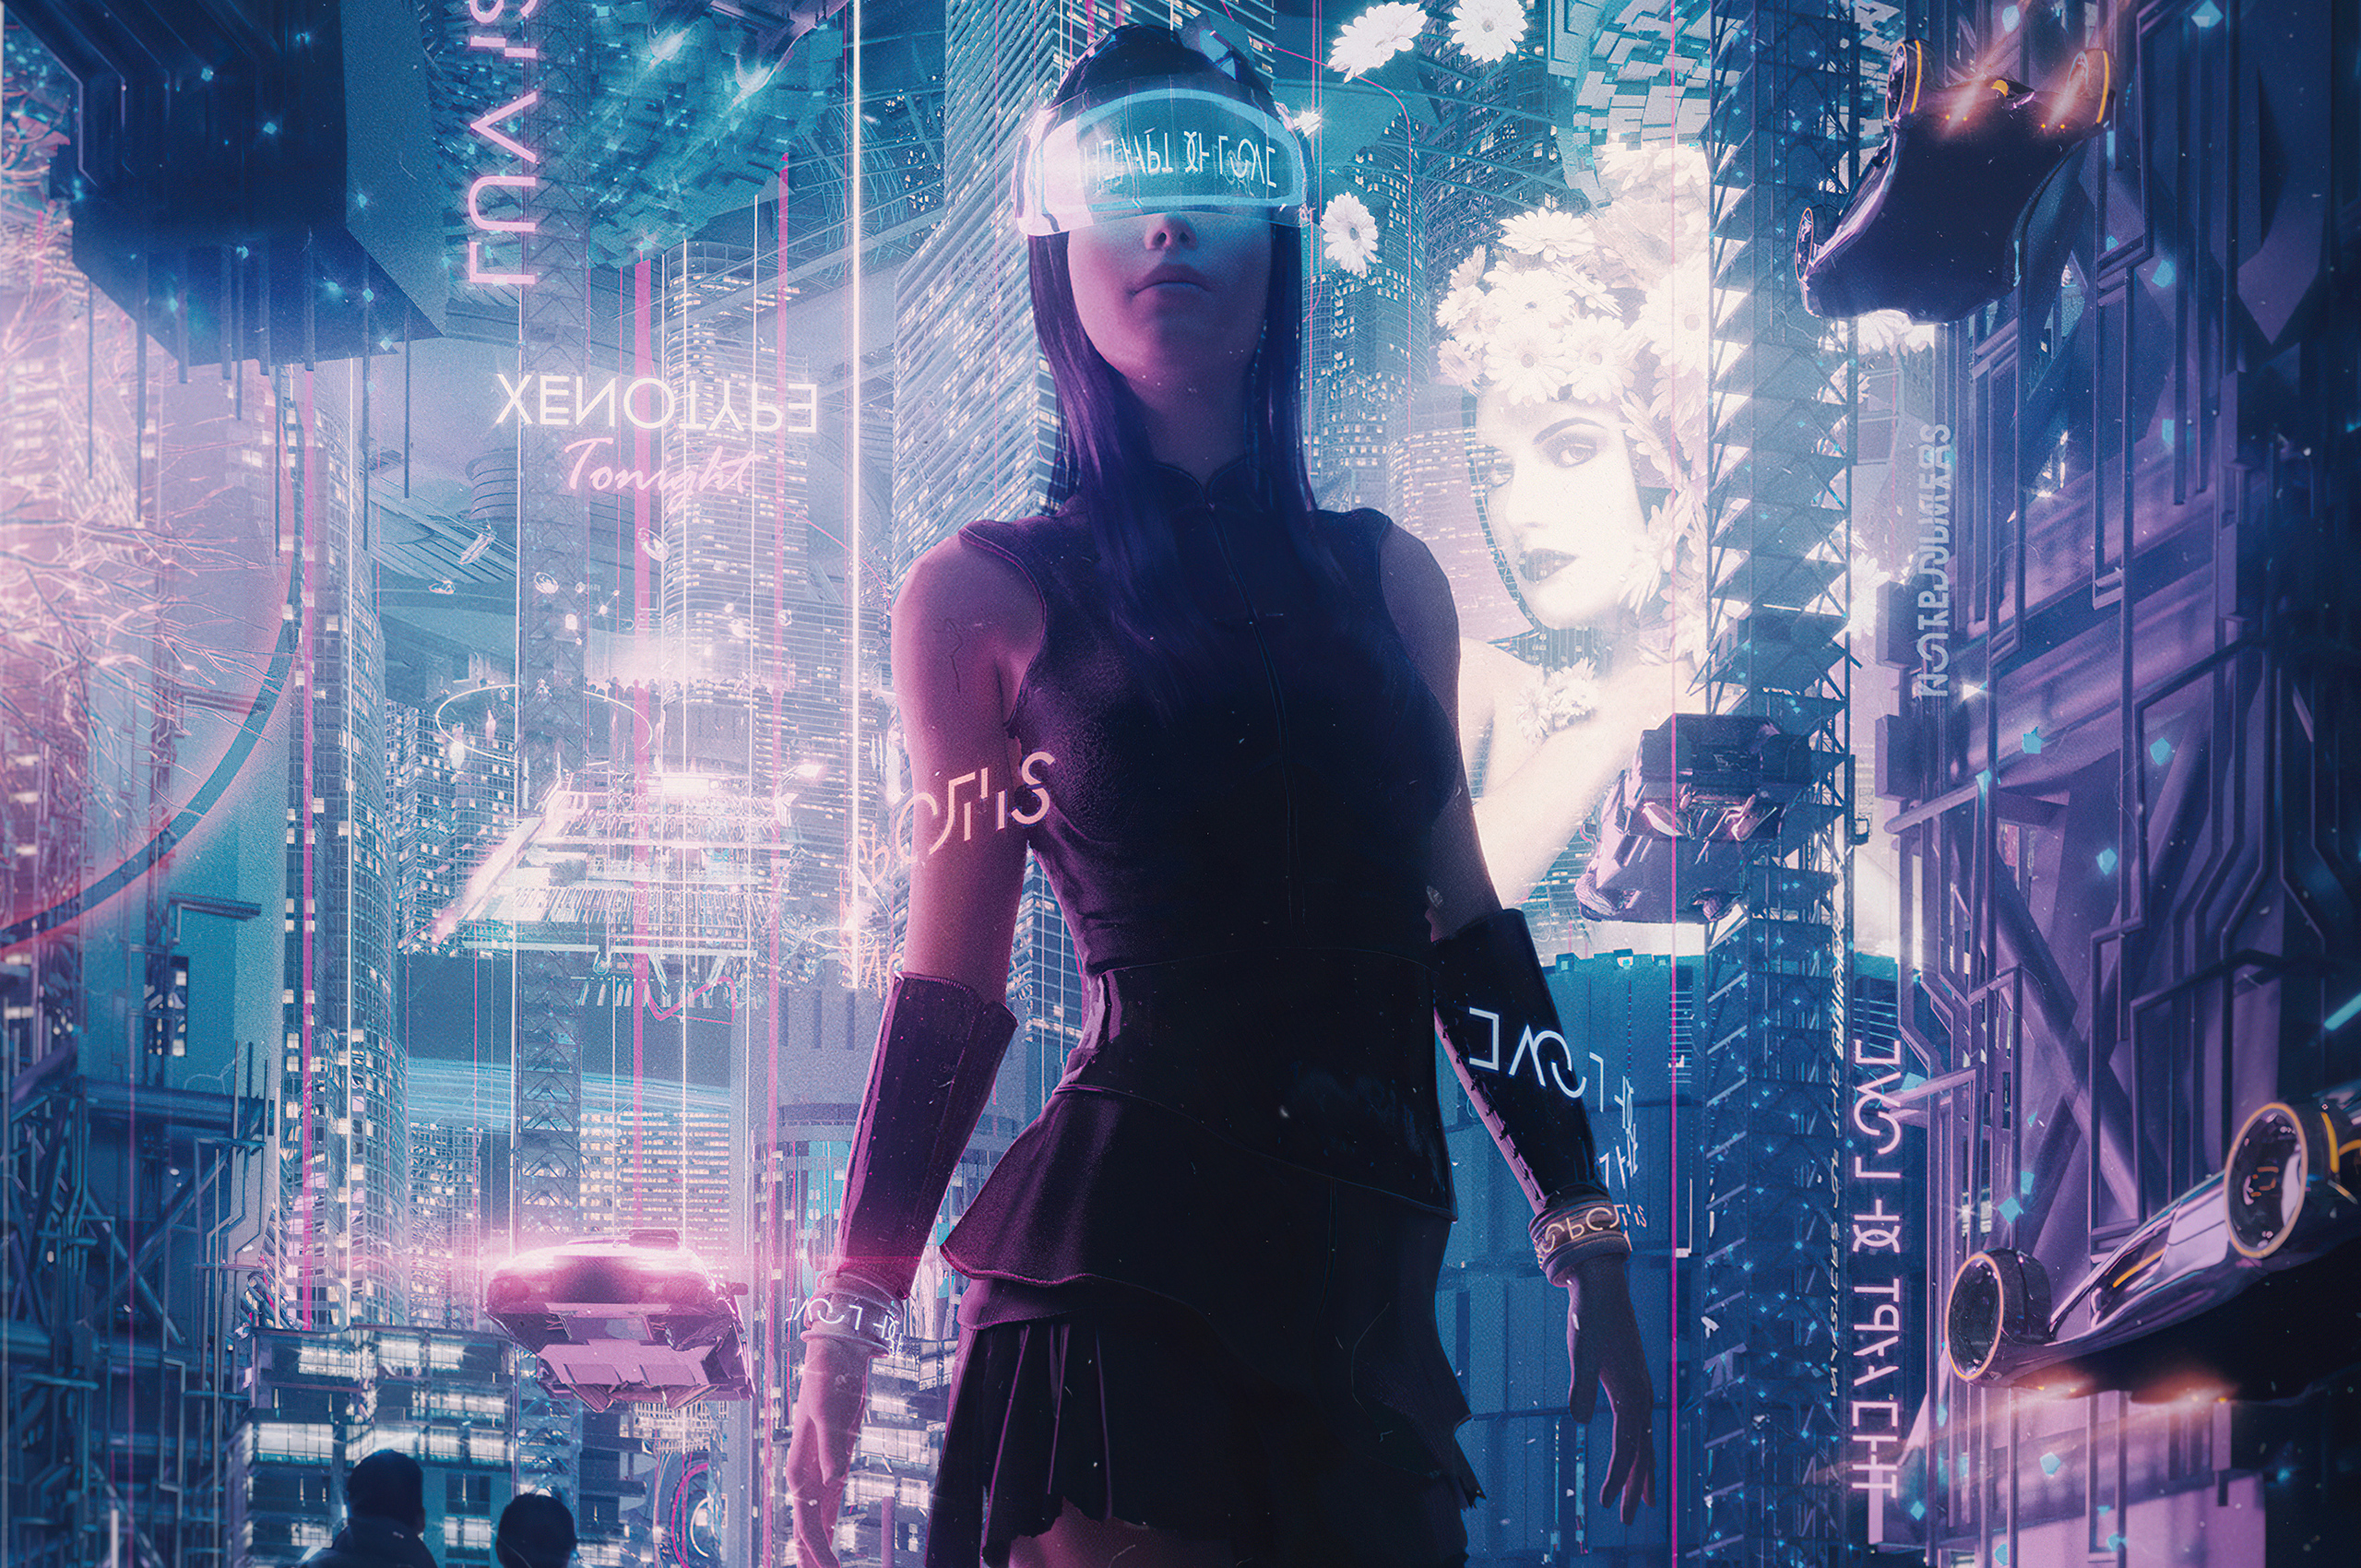 the-cyber-city-girl-4k-0u.jpg